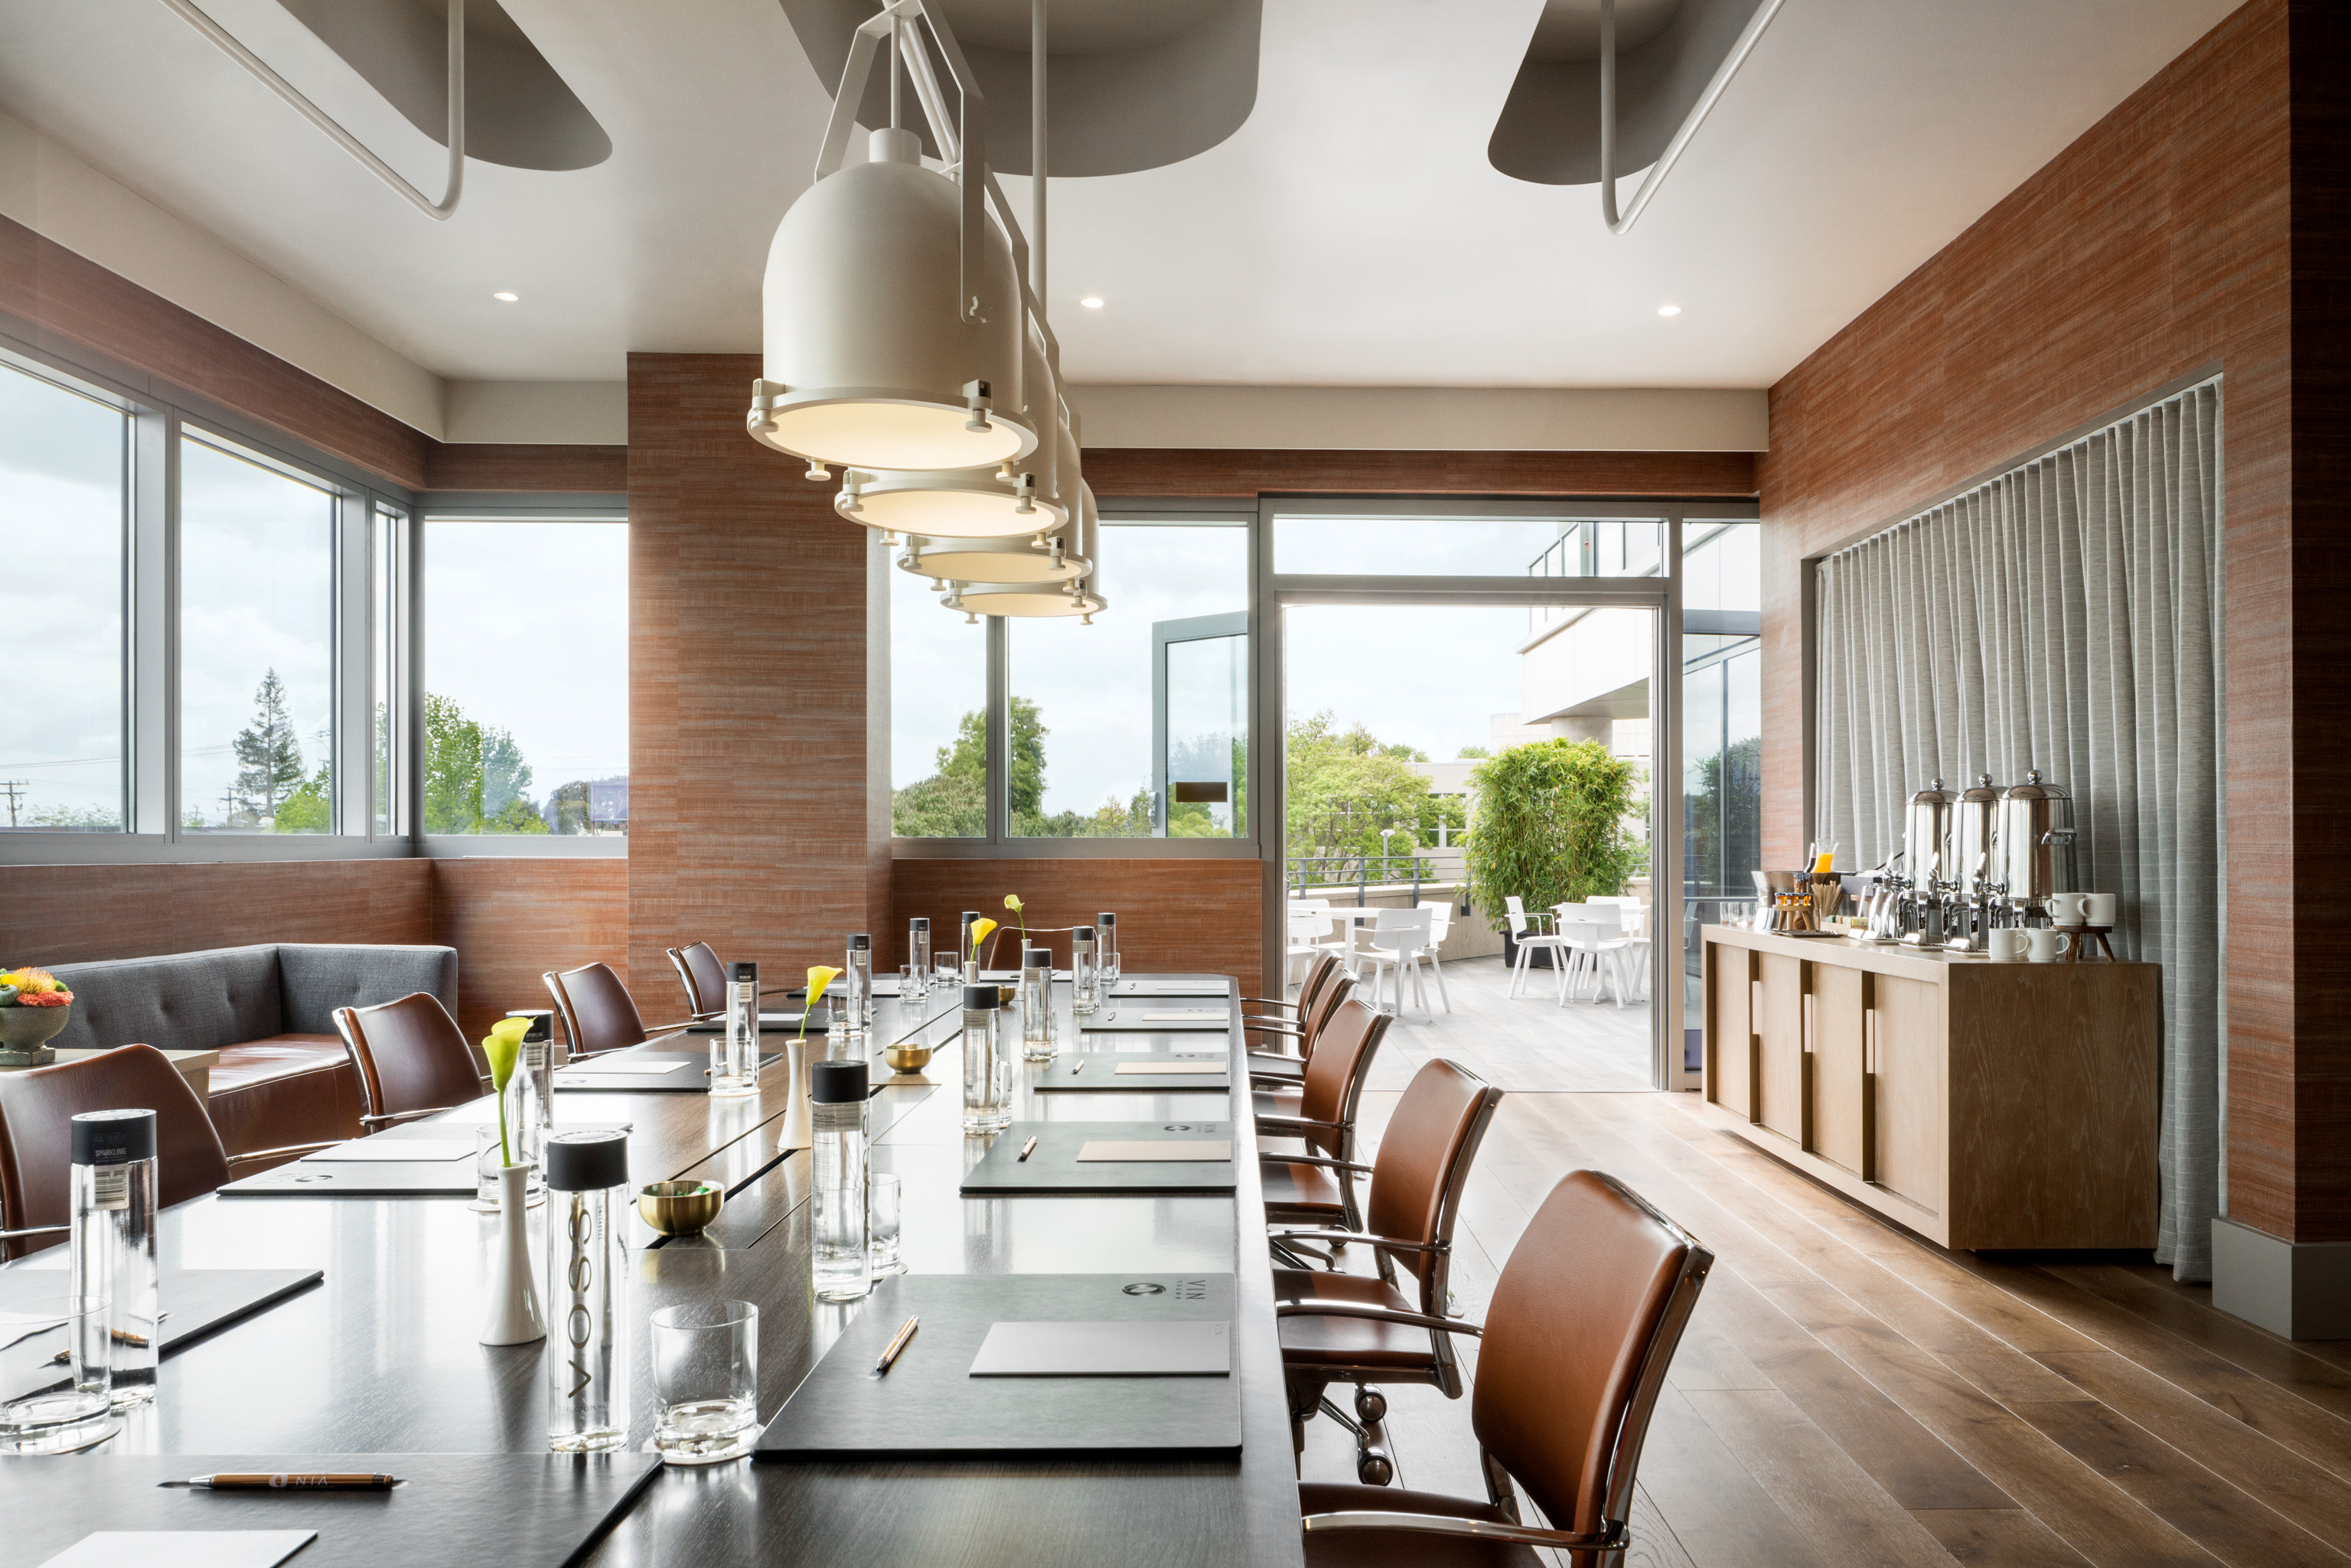 Photo #5 Influence Boardroom at Hotel Nia, Autograph Collection